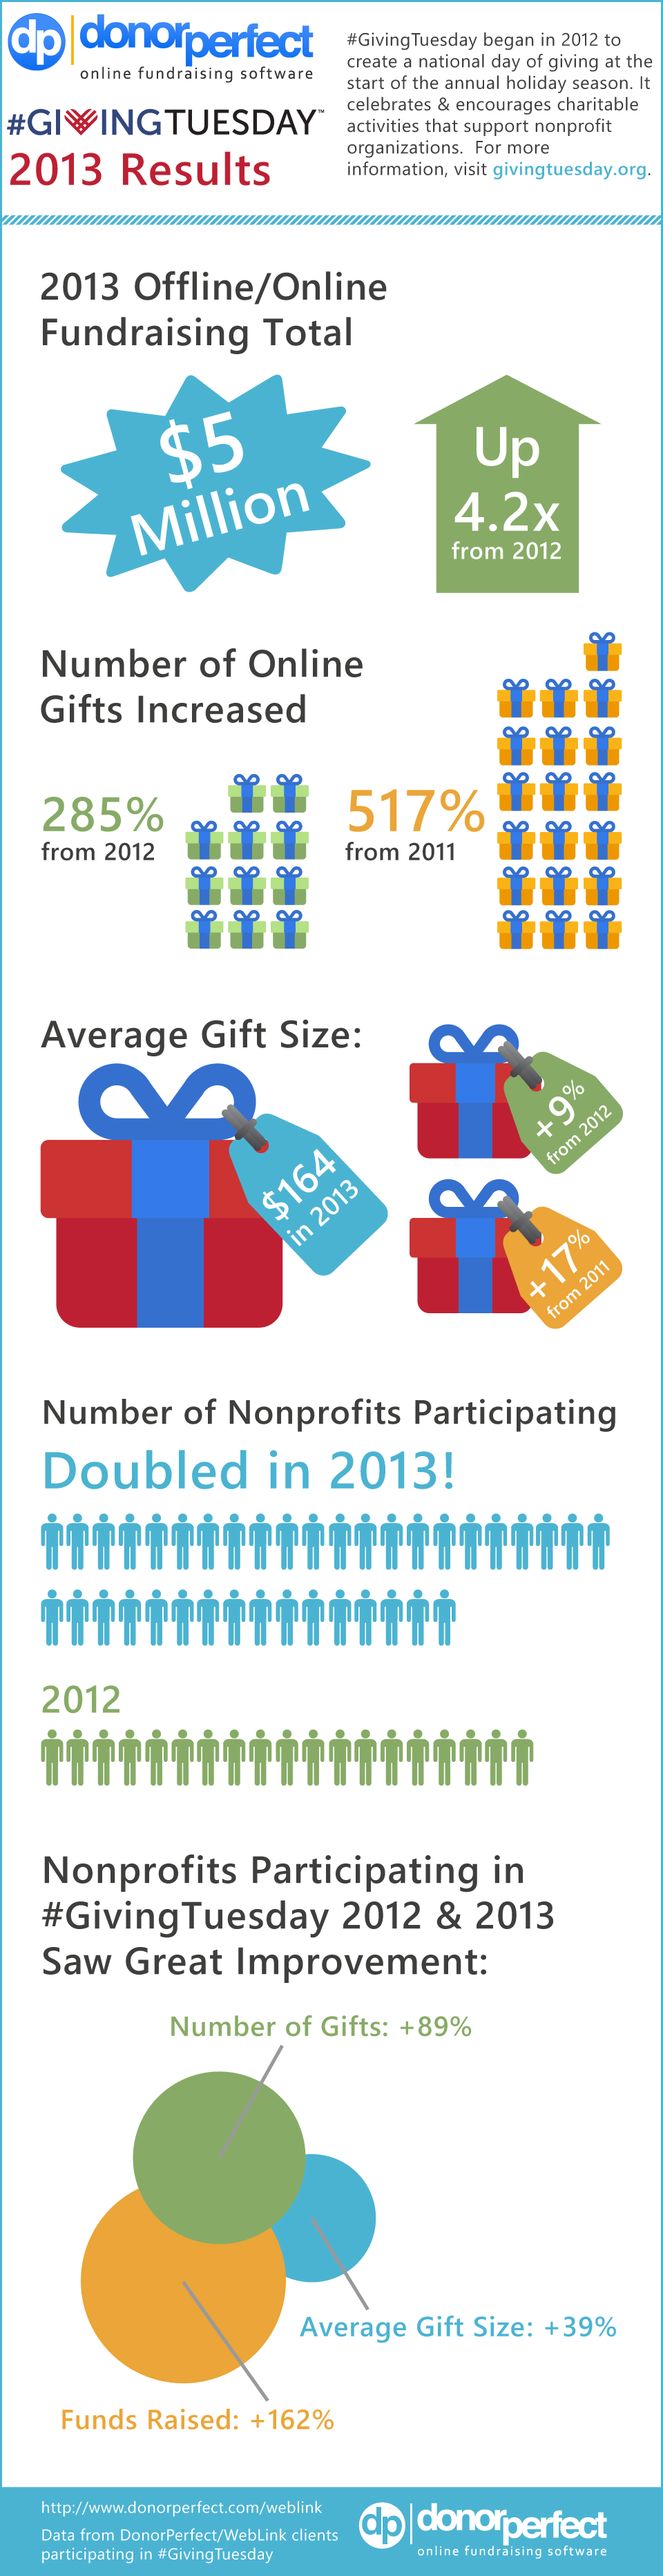 giving-tuesday-donorperfect-infographic_